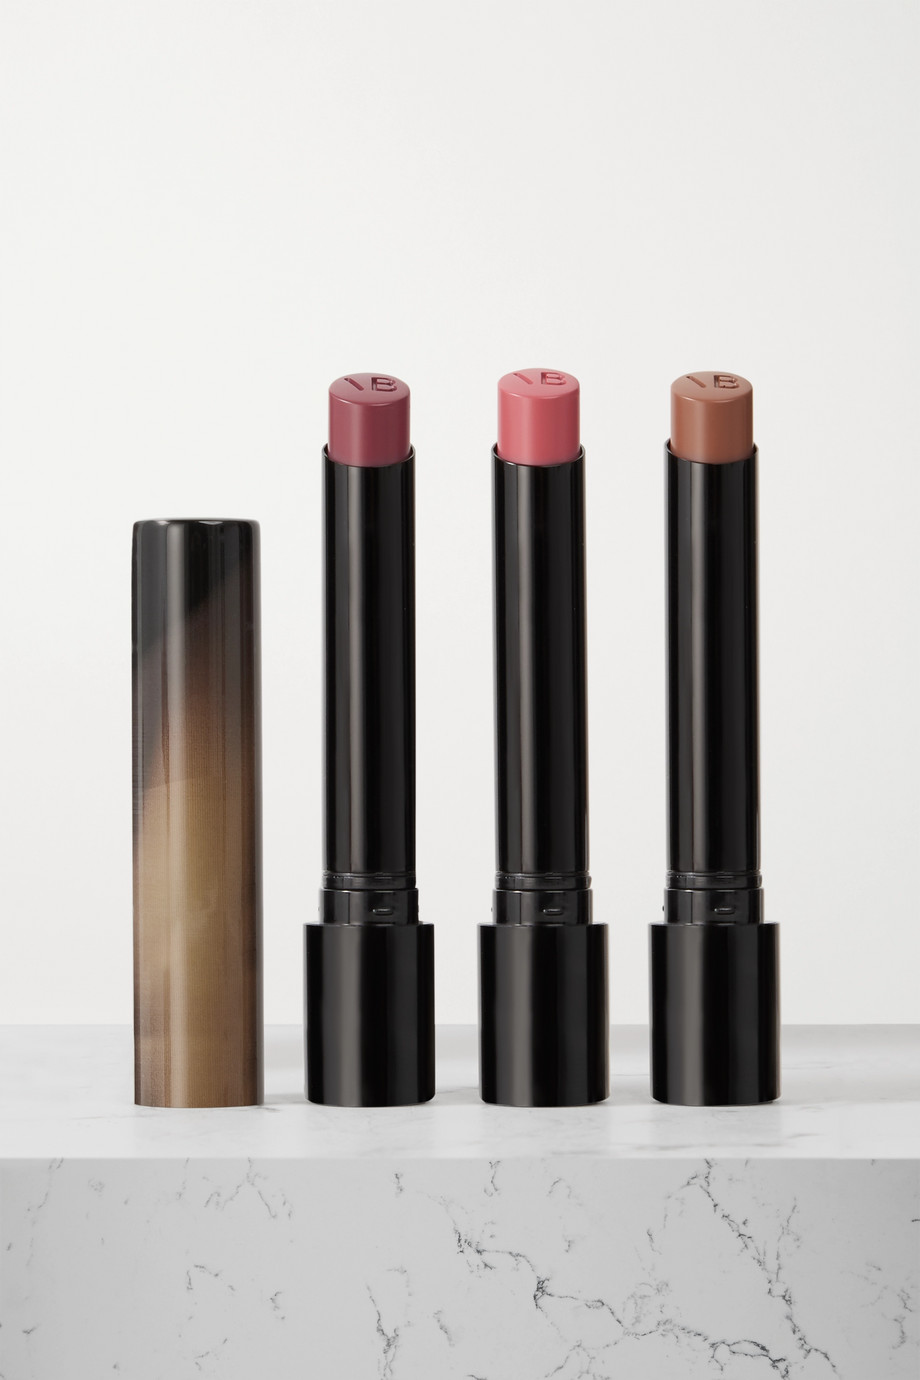 Victoria Beckham Beauty Posh Lipstick Trio: The VB Edit – Lippenstiftset